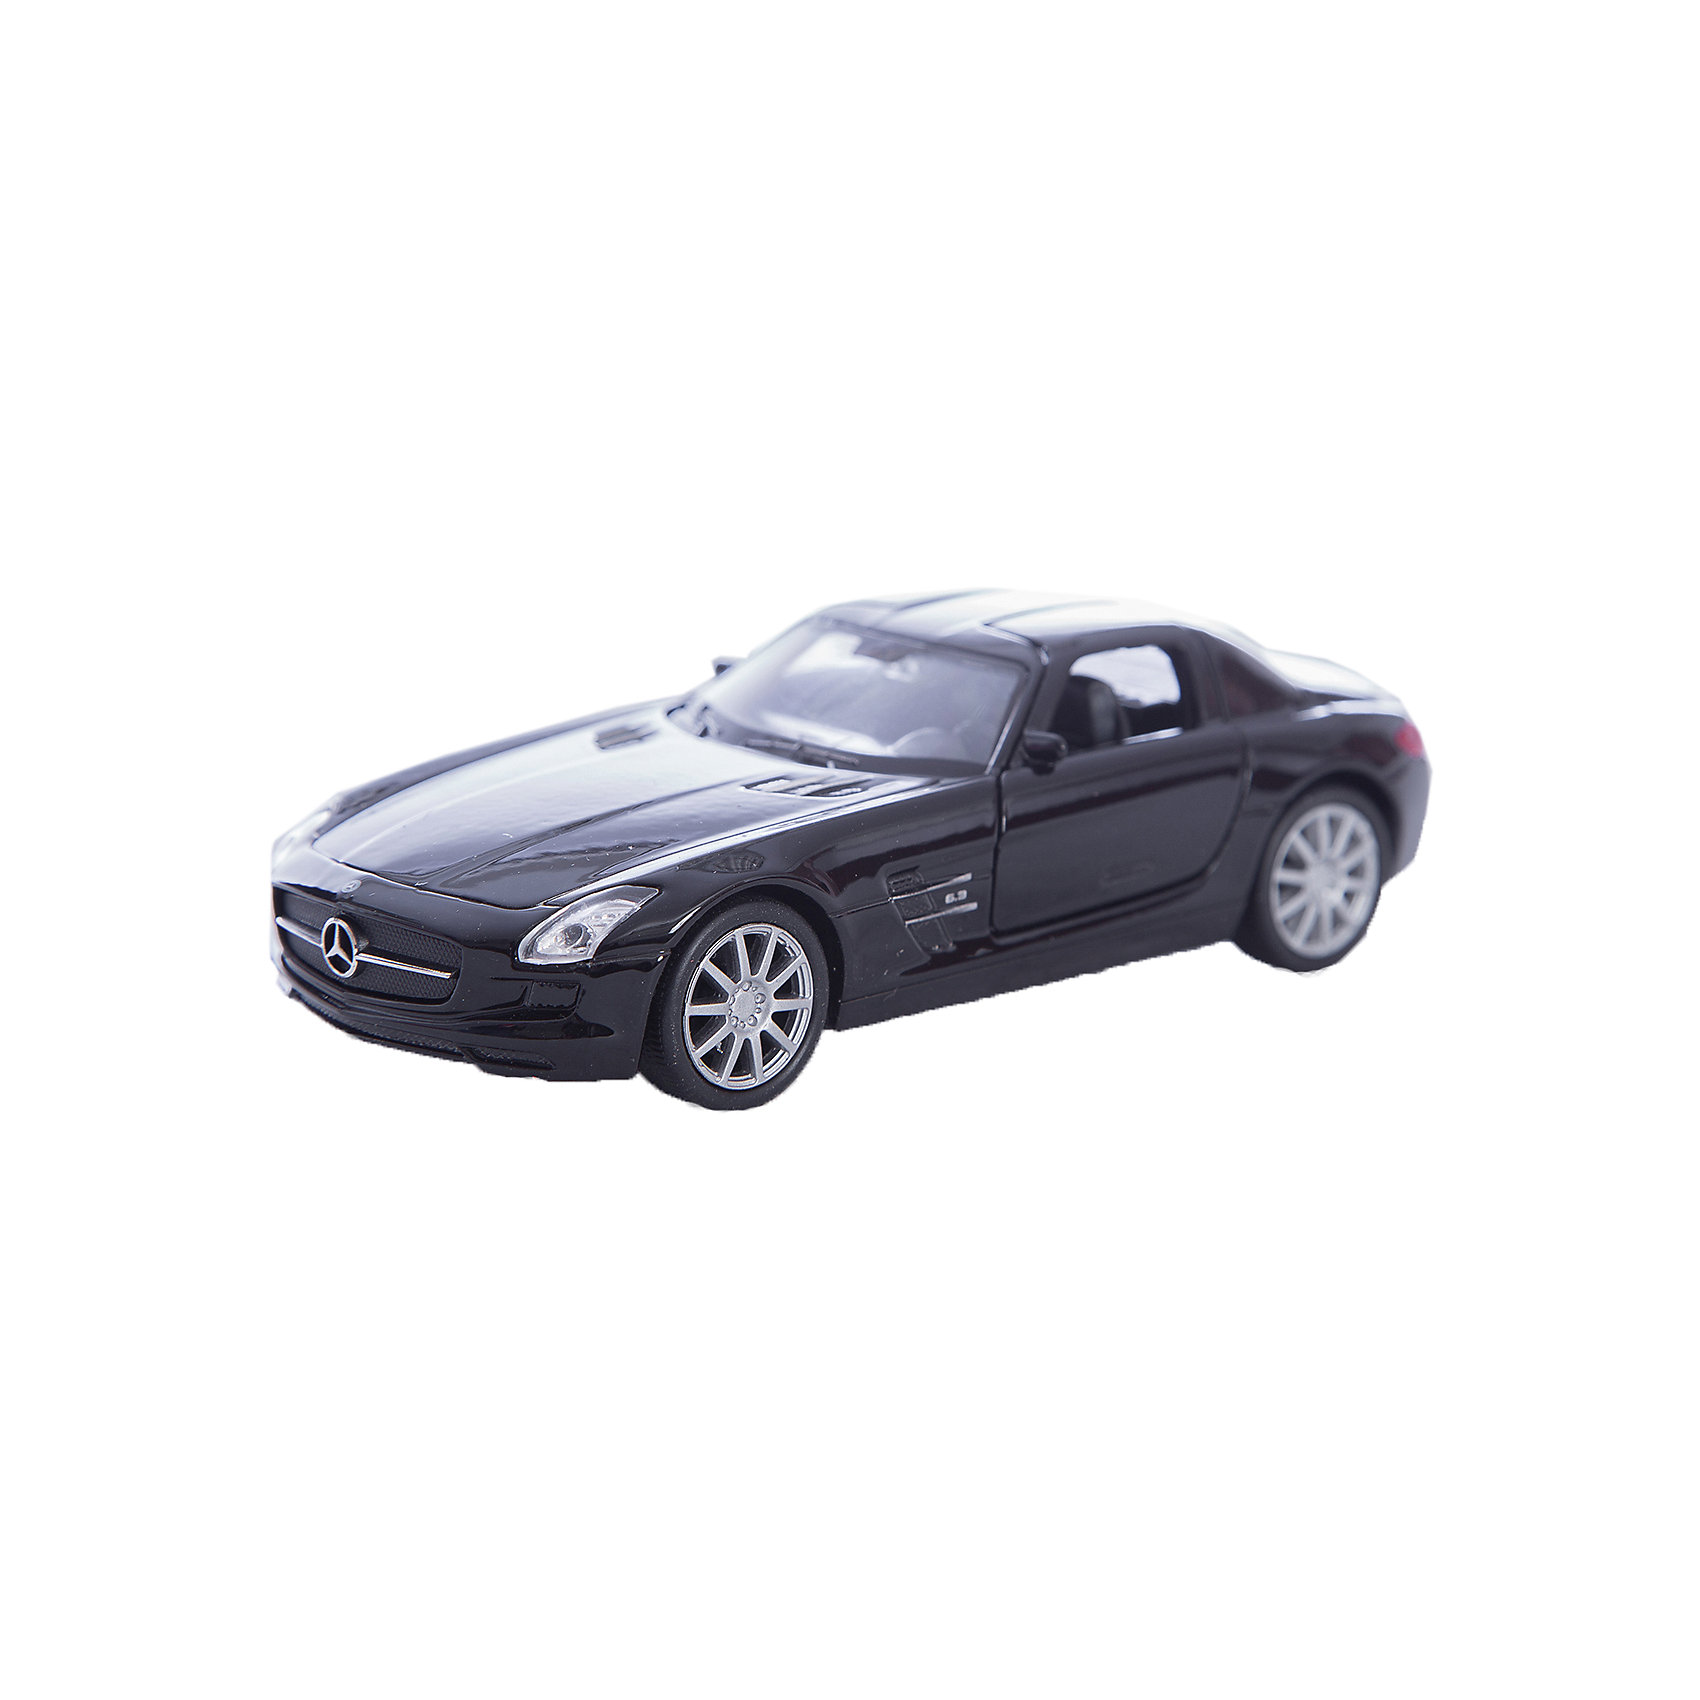 ������ ������ 1:34-39 Mercedes-Benz SLS AMG, Welly